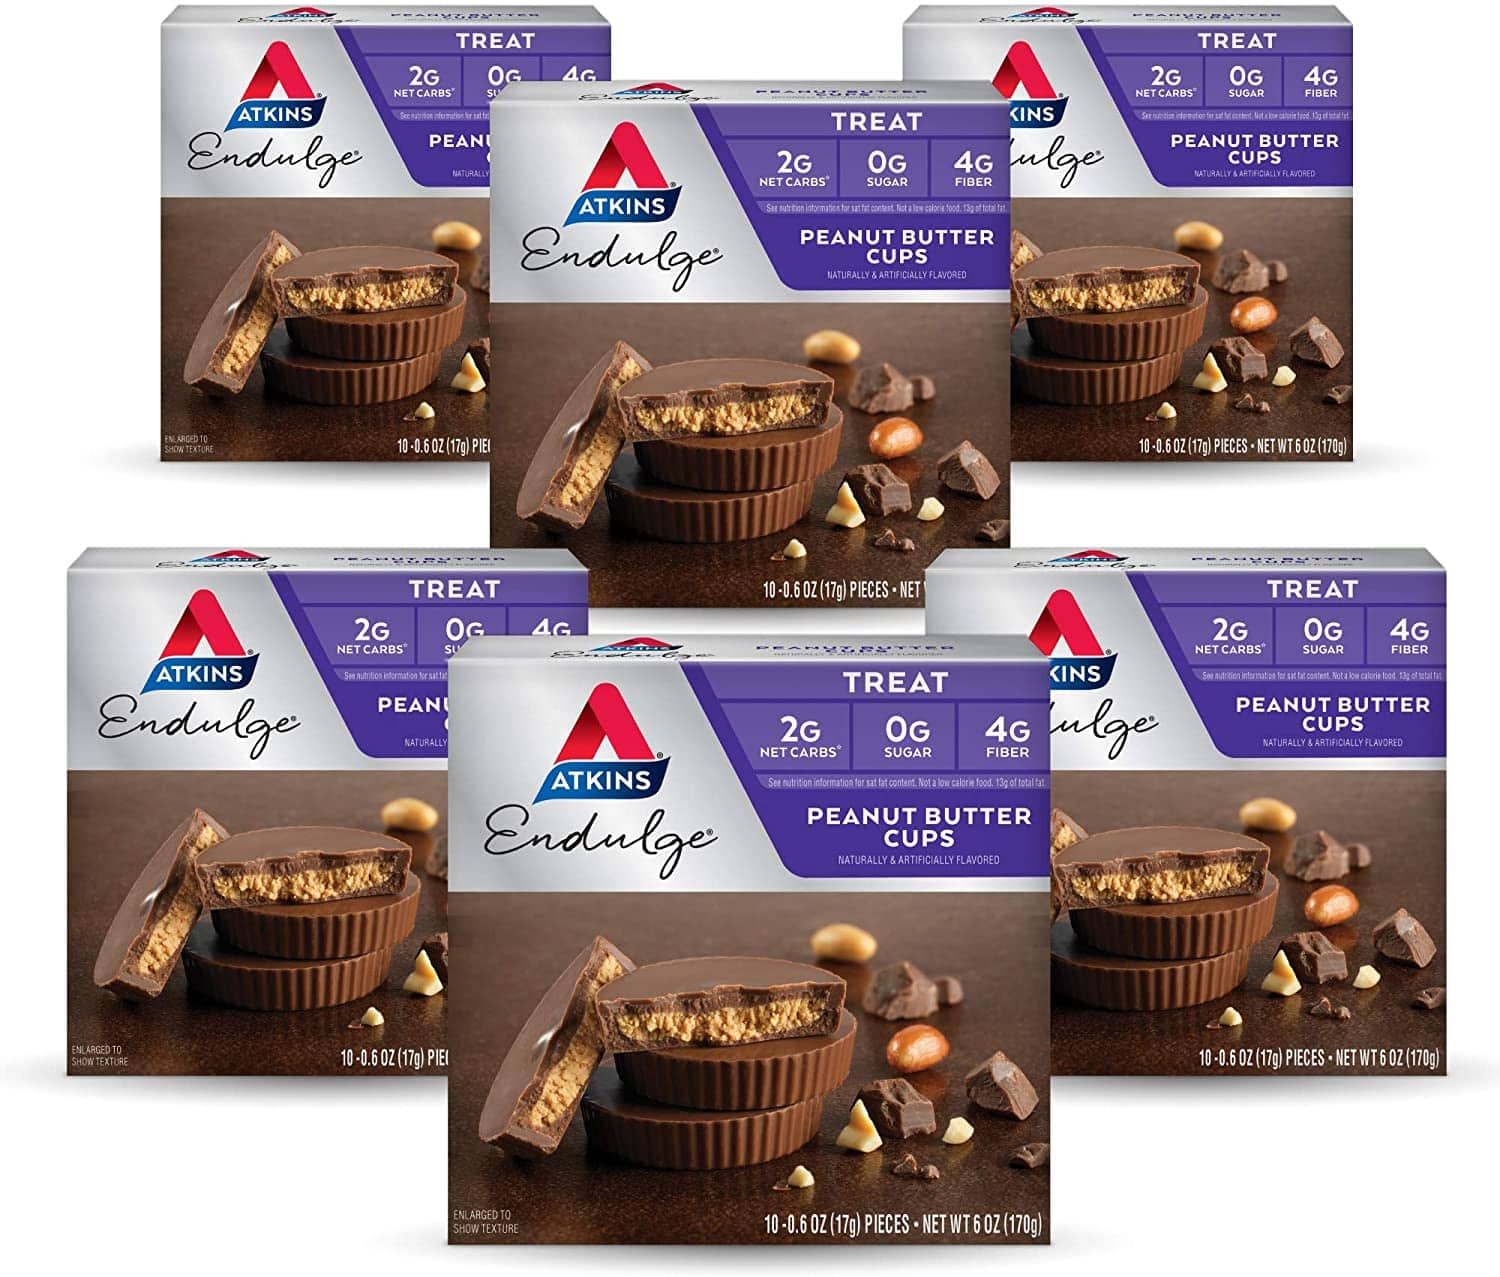 60-Count Atkins Endulge Treat Peanut Butter Cups $22.20 ($0.37/ea) + Free Shipping w/ Prime or $25+